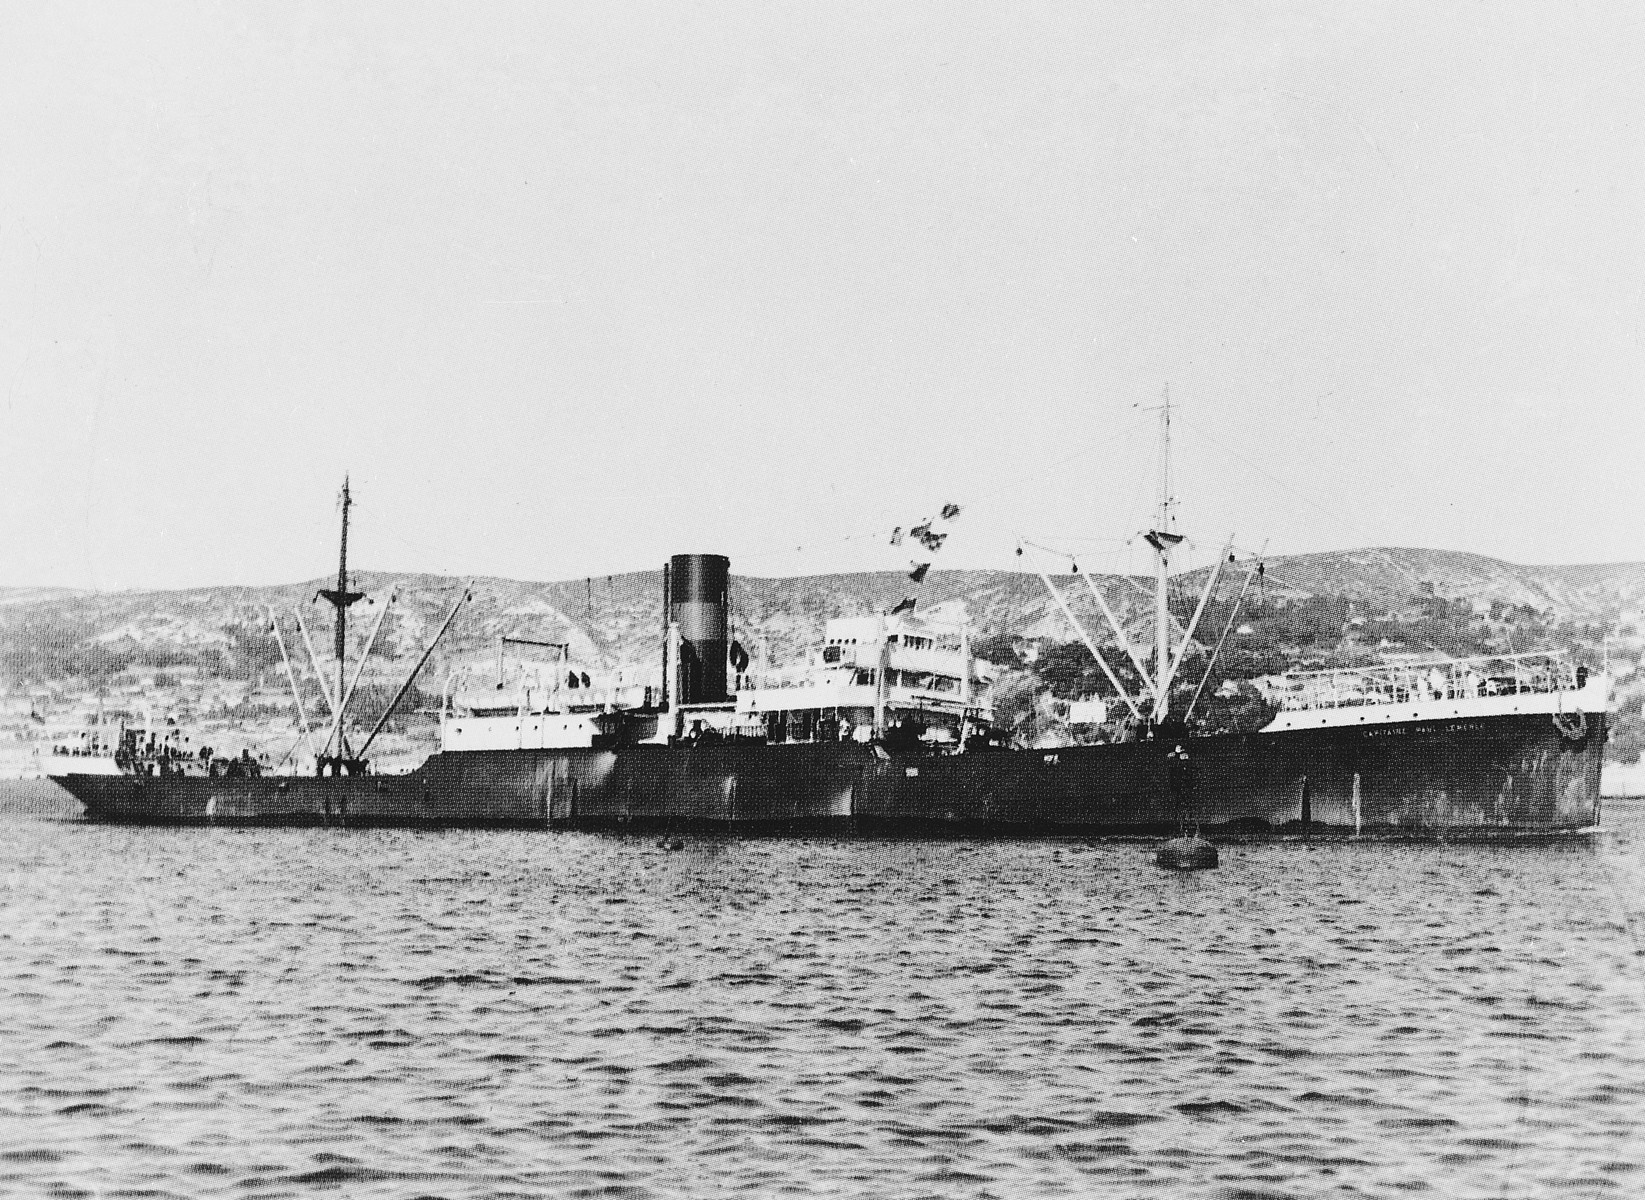 View of the Capitaine Paul-Lemerle, a converted cargo ship that sailed from Marseilles to Martinique with European refugees sponsored by Varian Fry's Centre Americain de Secours.